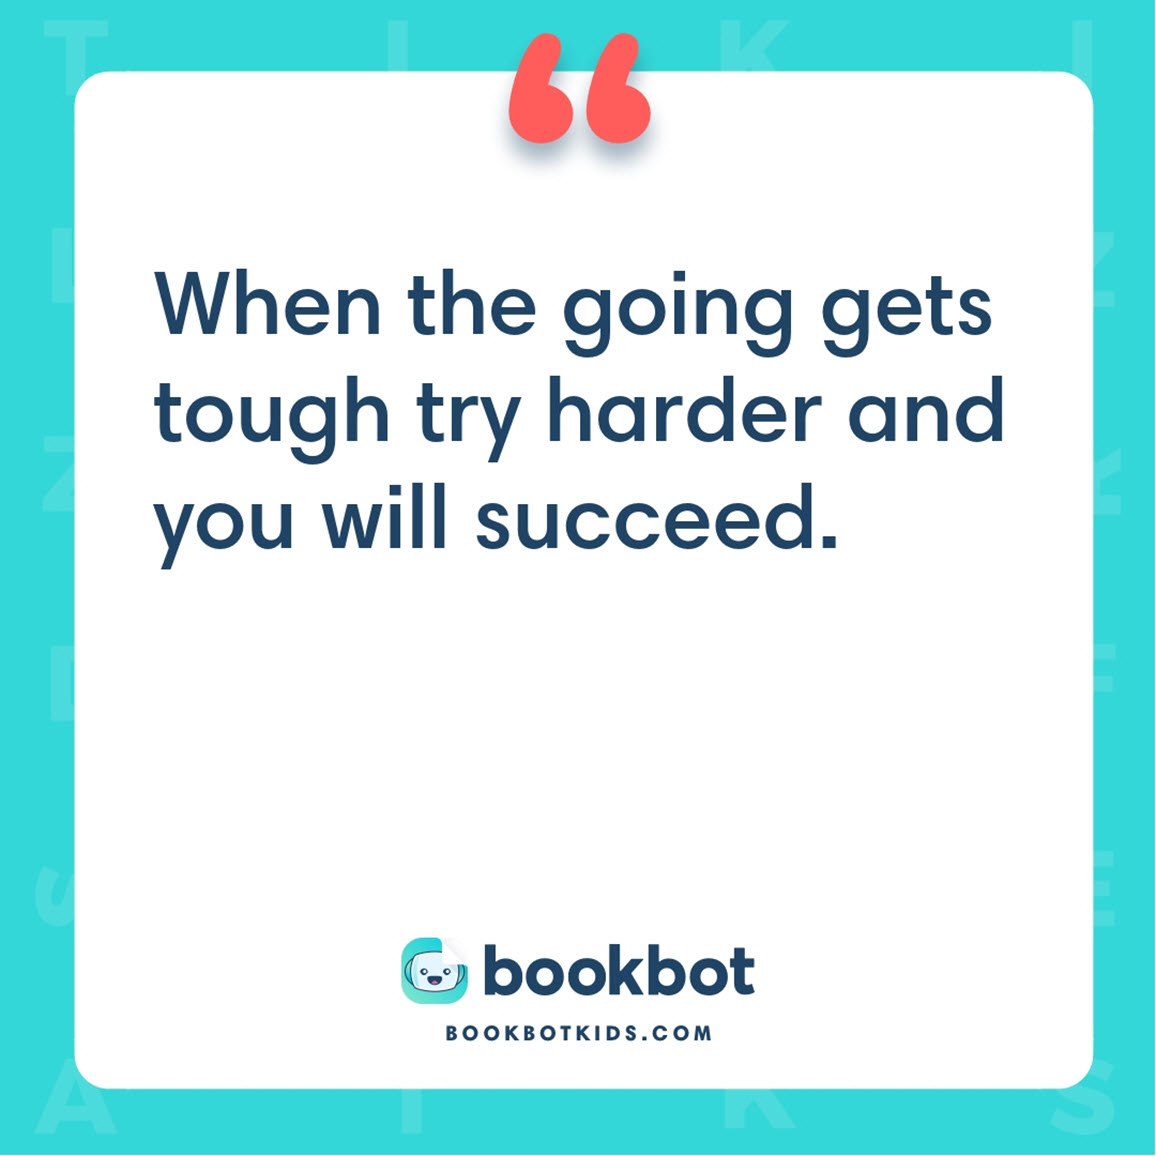 When the going gets tough try harder and you will succeed.